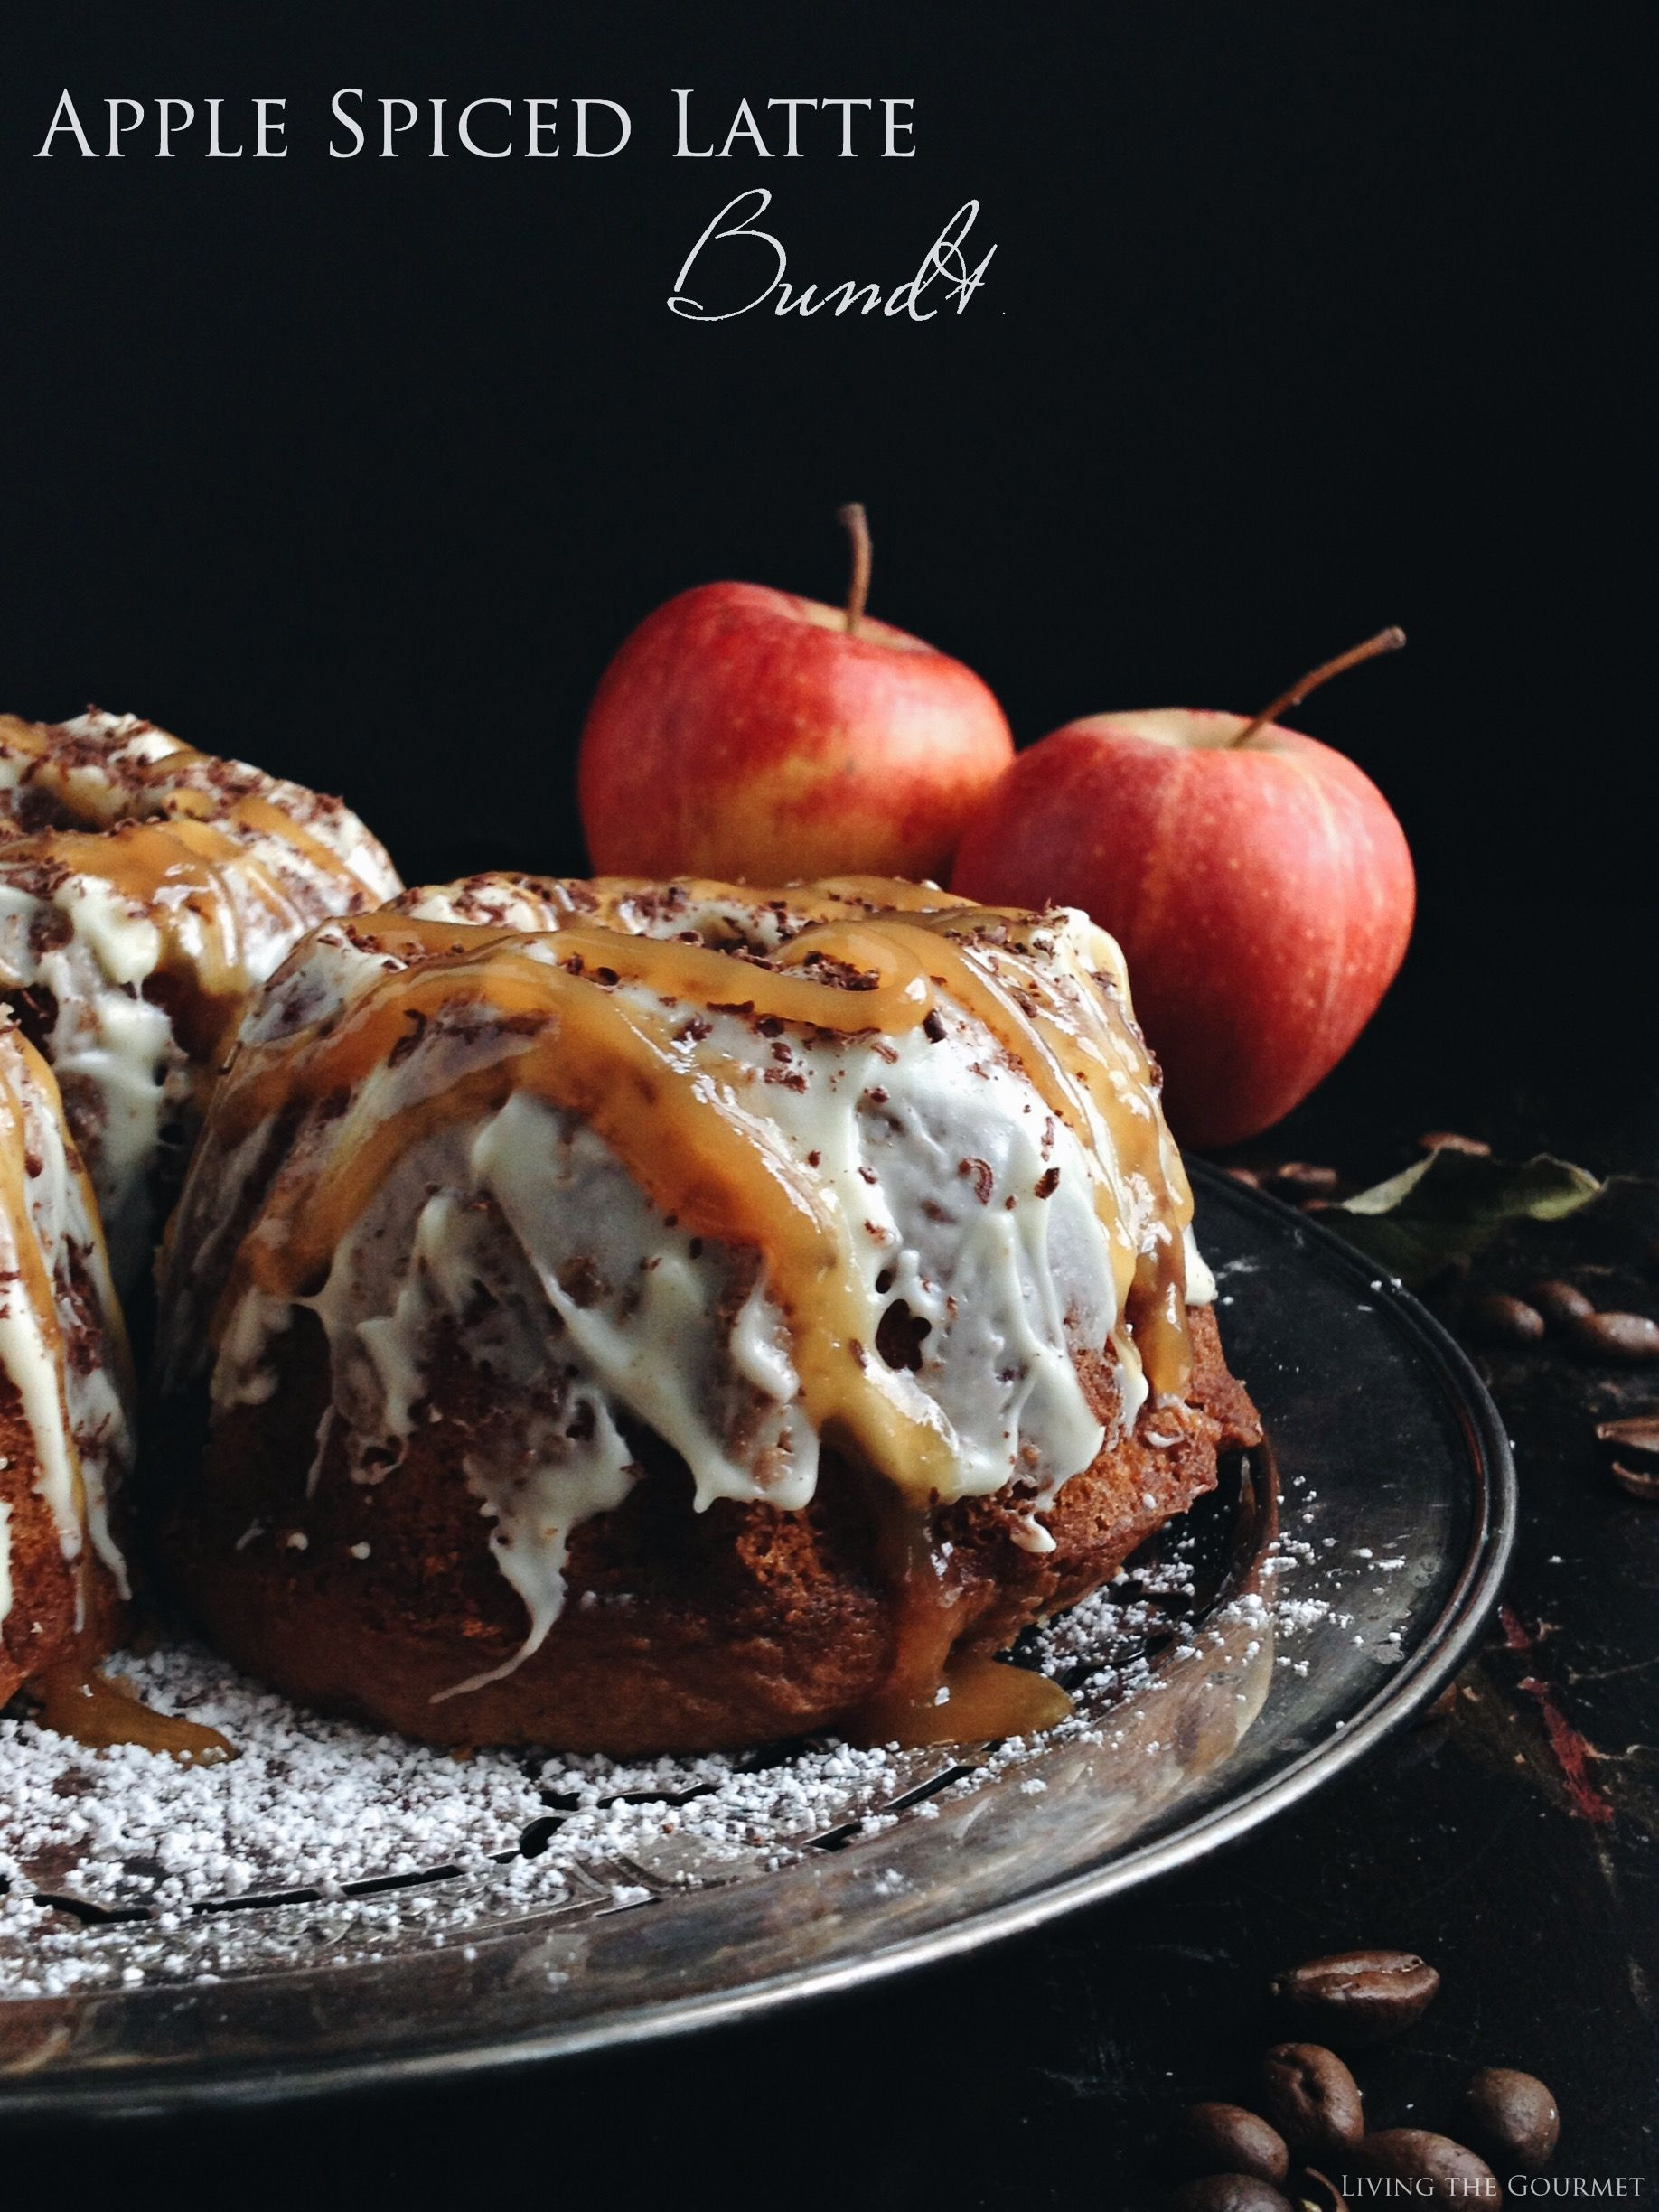 Inspired by a fall favorite, these bundts have all the trimmings! A java infused cake is speckled with spiced apples, then cloaked in white chocolate, grated chocolate and a caramel drizzle. I have been going crazy this season with apples. My creativity was put on hold due to a cold but now that I'm better,...Read More »